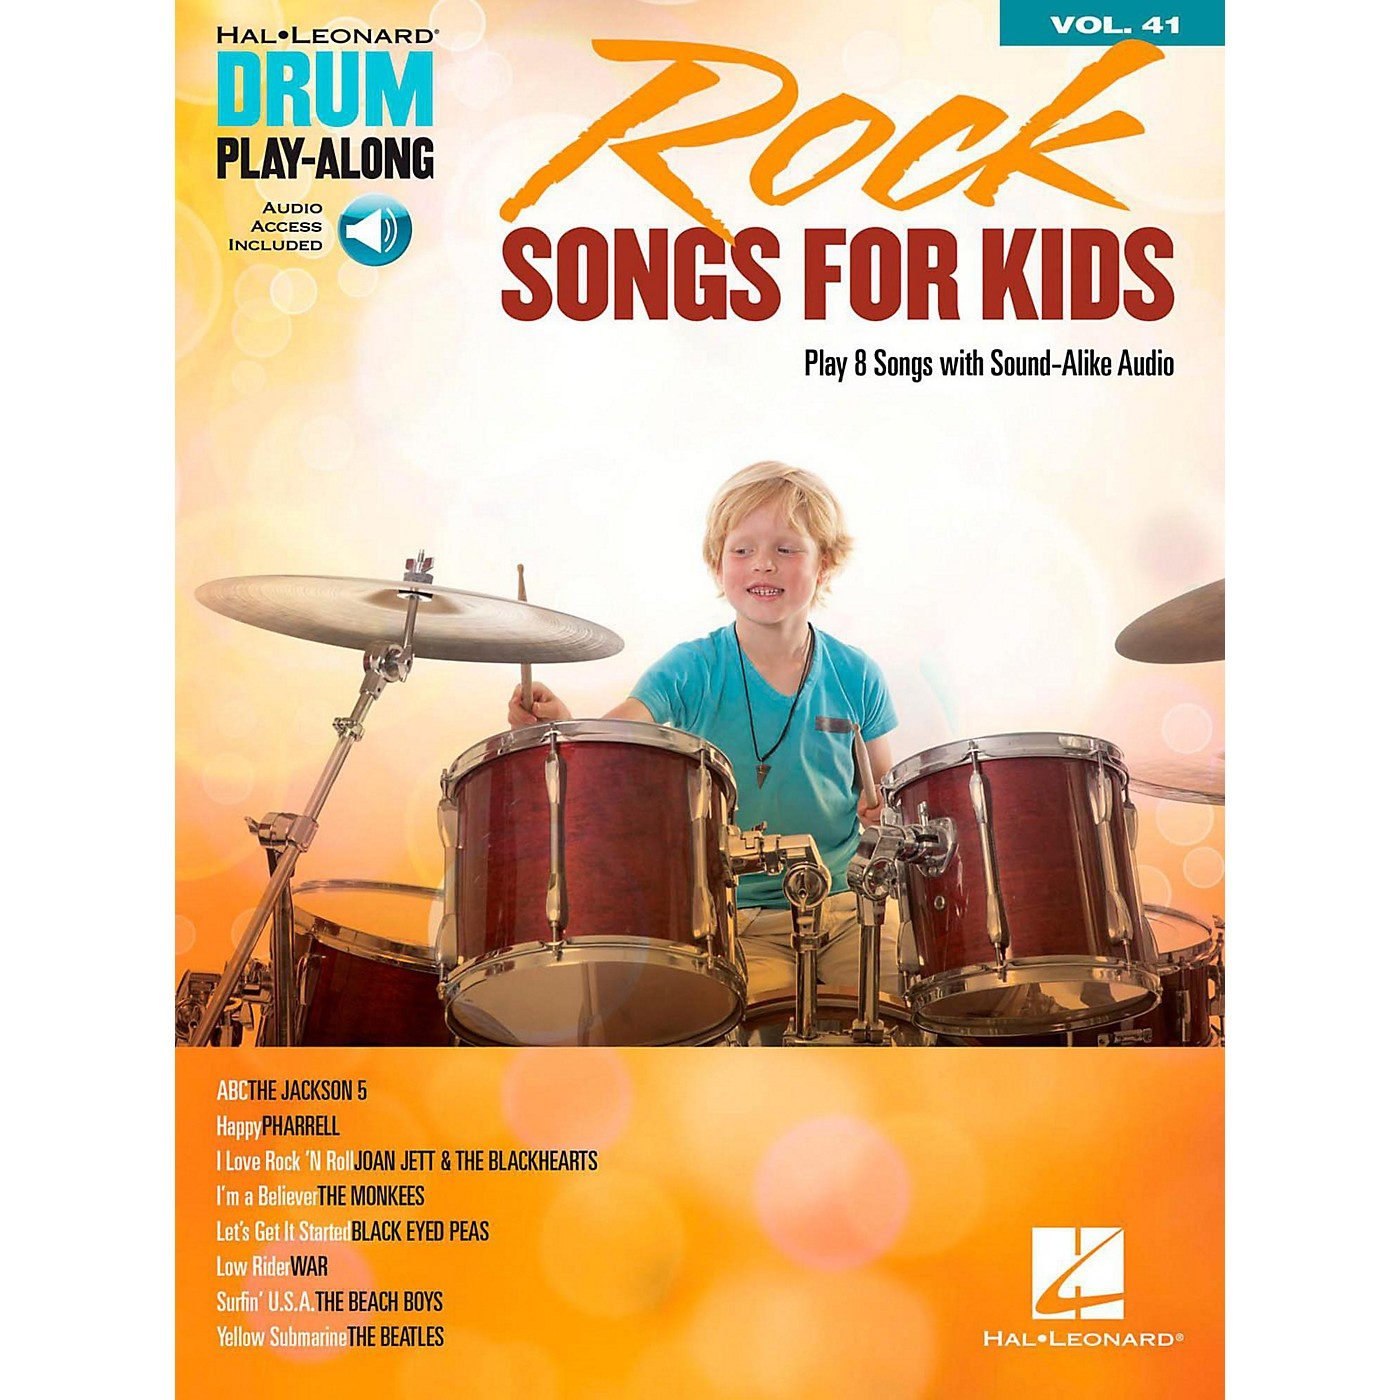 Hal Leonard Rock Songs for Kids - Drum Play-Along Volume 41 Book/Audio Online thumbnail